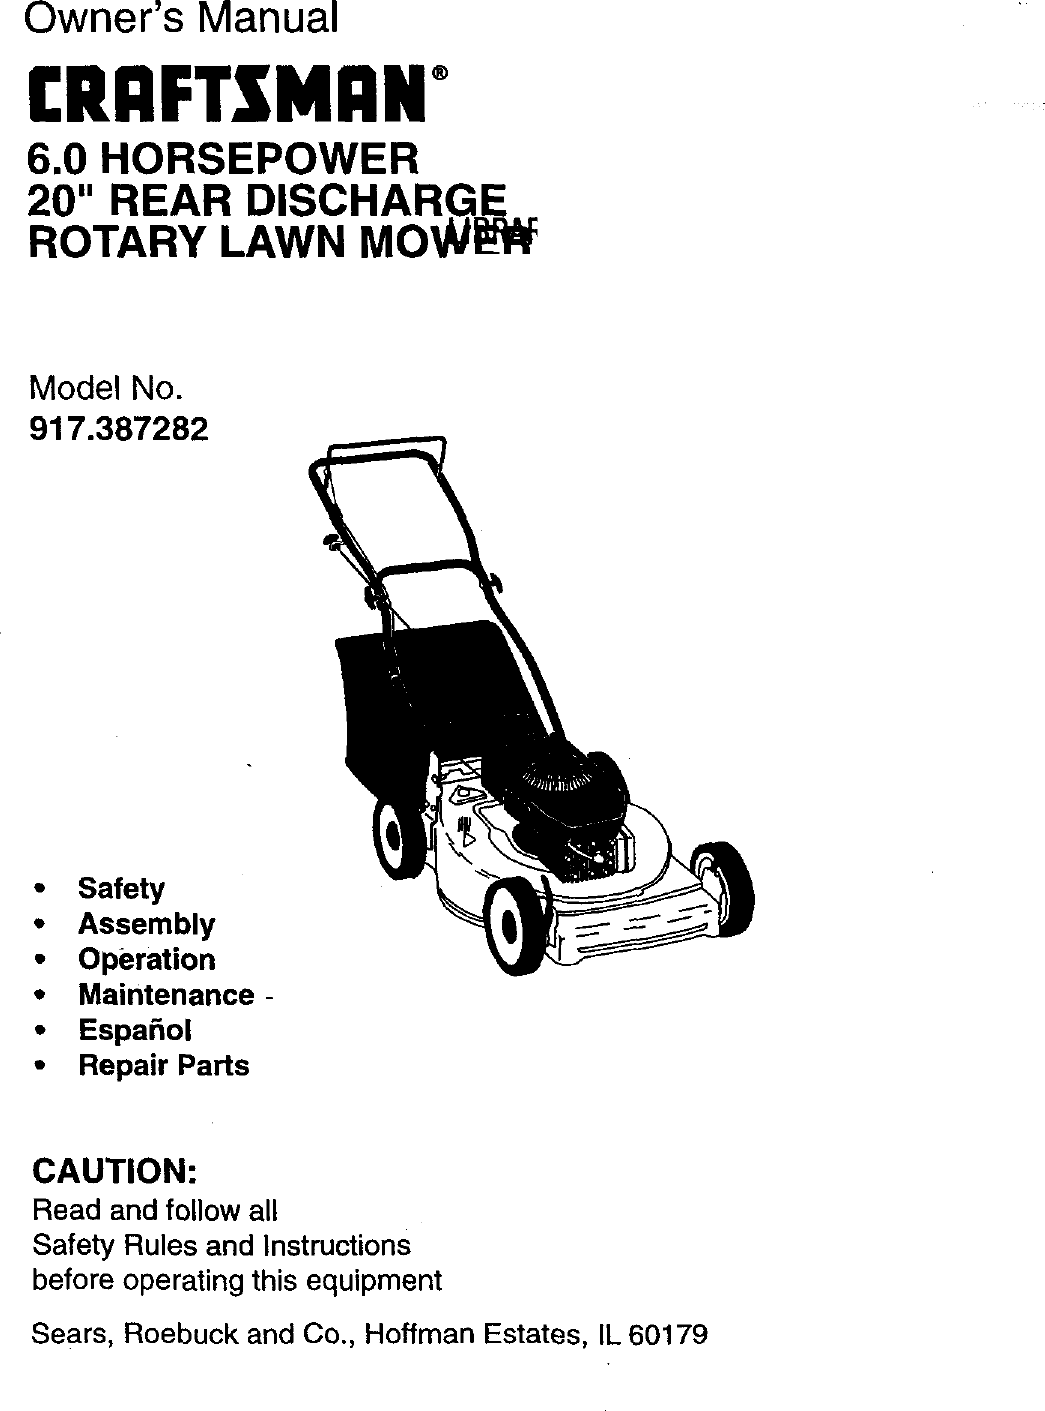 Craftsman 917387282 User Manual Rotary Mower Manuals And Guides 98120007 Engine Assembly Diagram Parts List For Lawnboy Walkbehindlawn